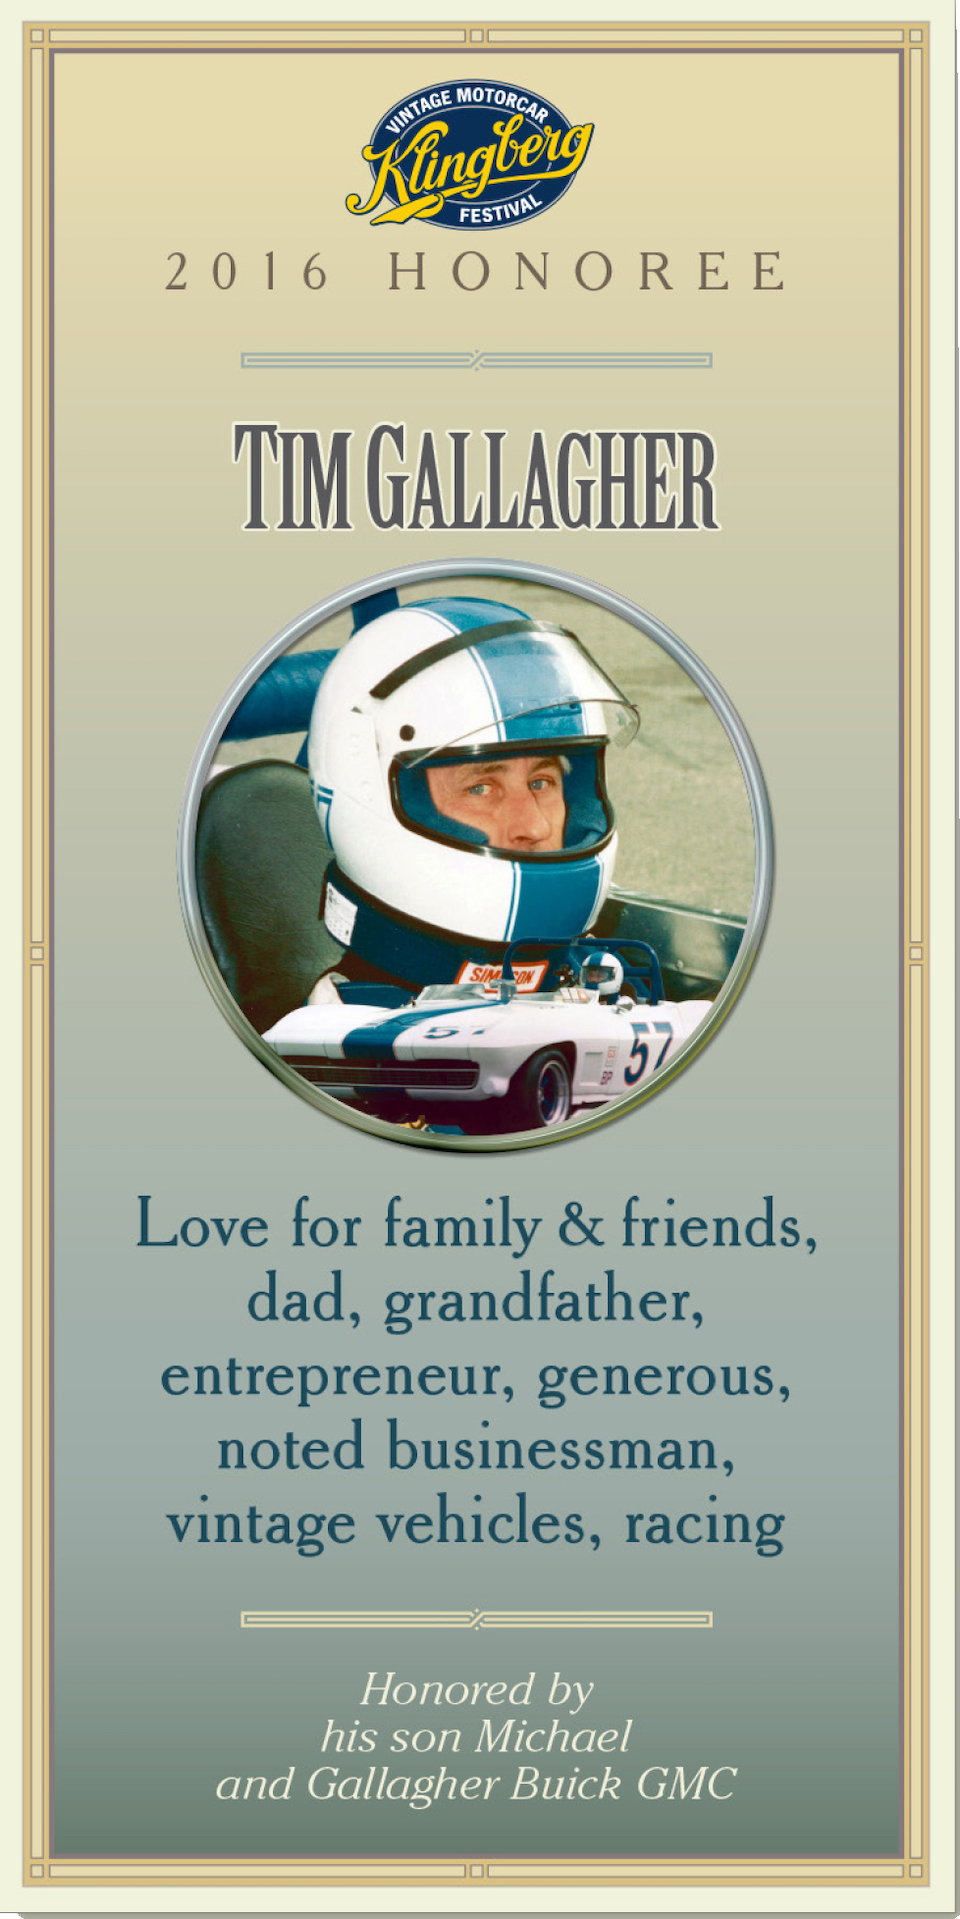 honor-tim-gallagher